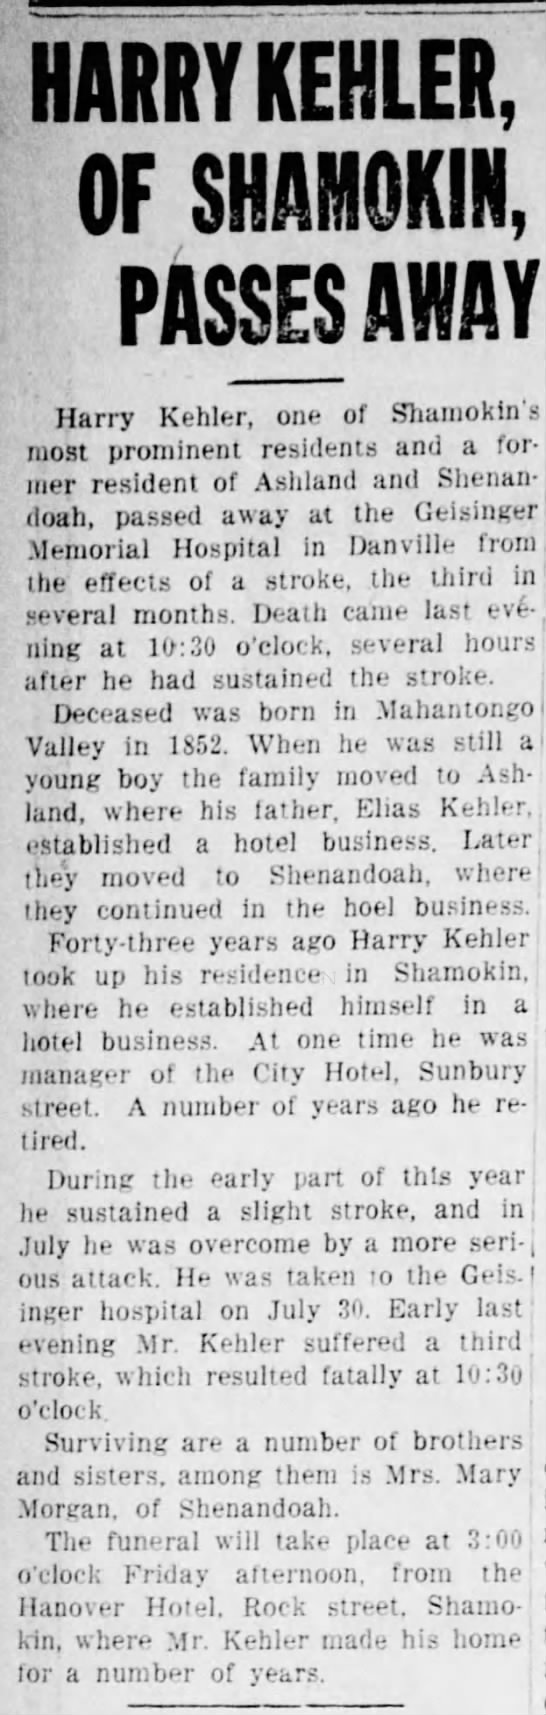 Daily News (Mt Carmel) 11 Aug 1926 Page 8 -